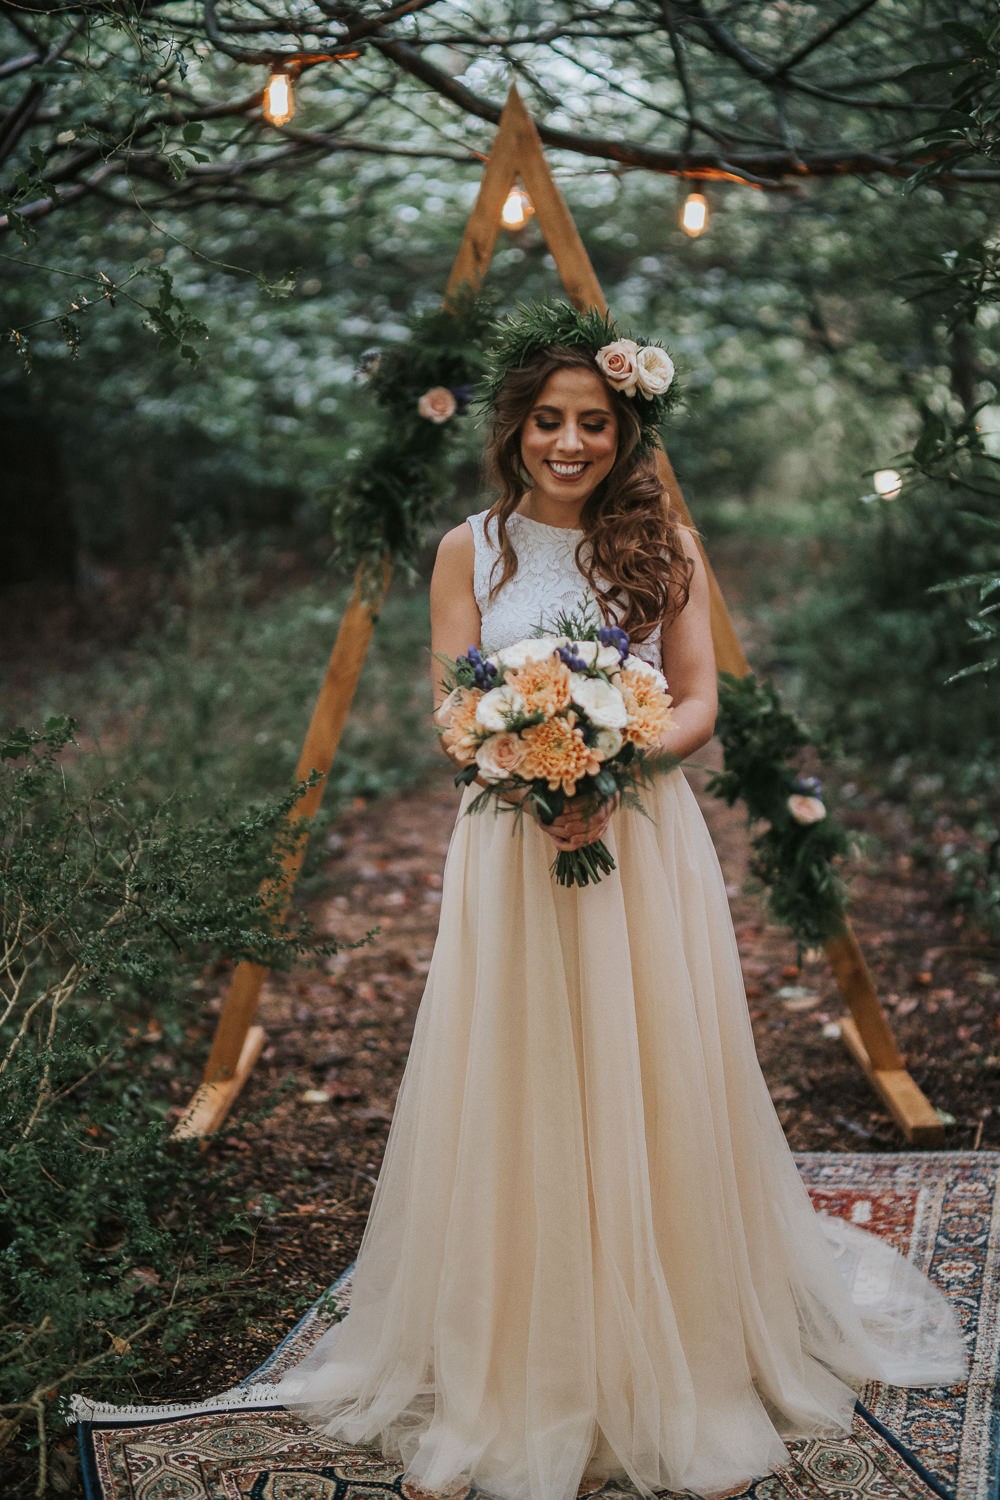 Dress Gown Bride Bridal Separates Skirt Top Woodland Wedding Inspiration Stephanie Dreams Photography